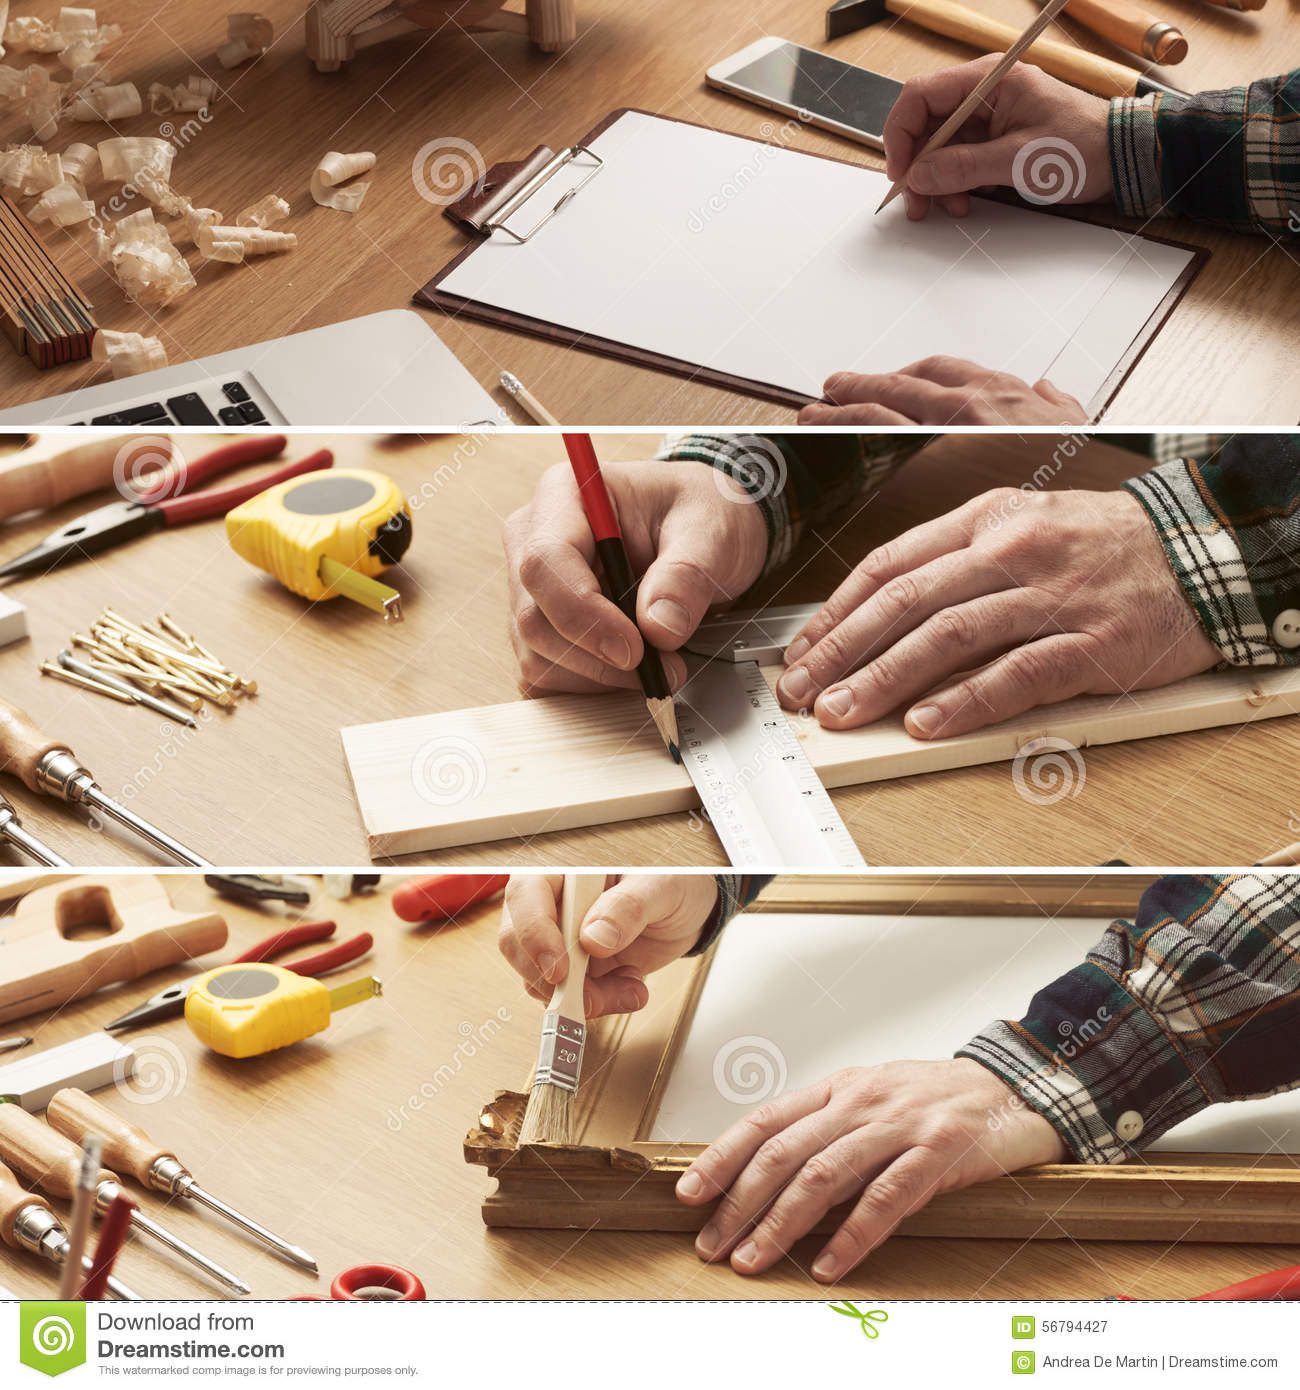 Do Yourself Home Improvement Project Diy And Carpentry Collage Stock Image Image Of Collage